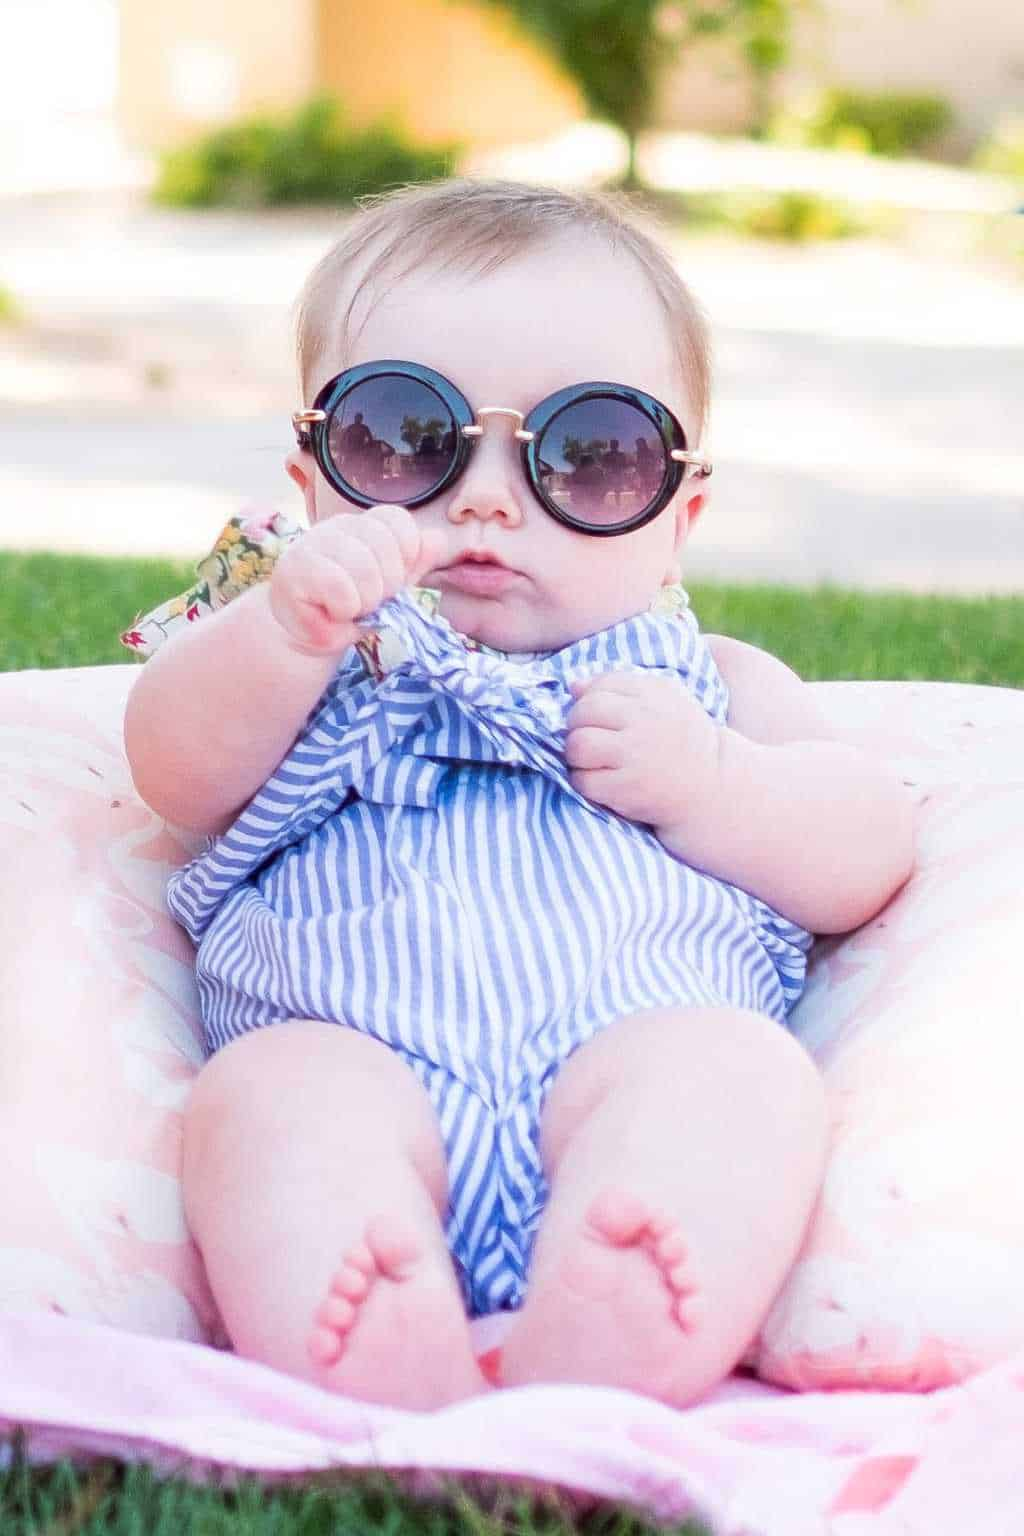 ee86c075d4c My Current Favorite Baby Sunglasses for Gwen